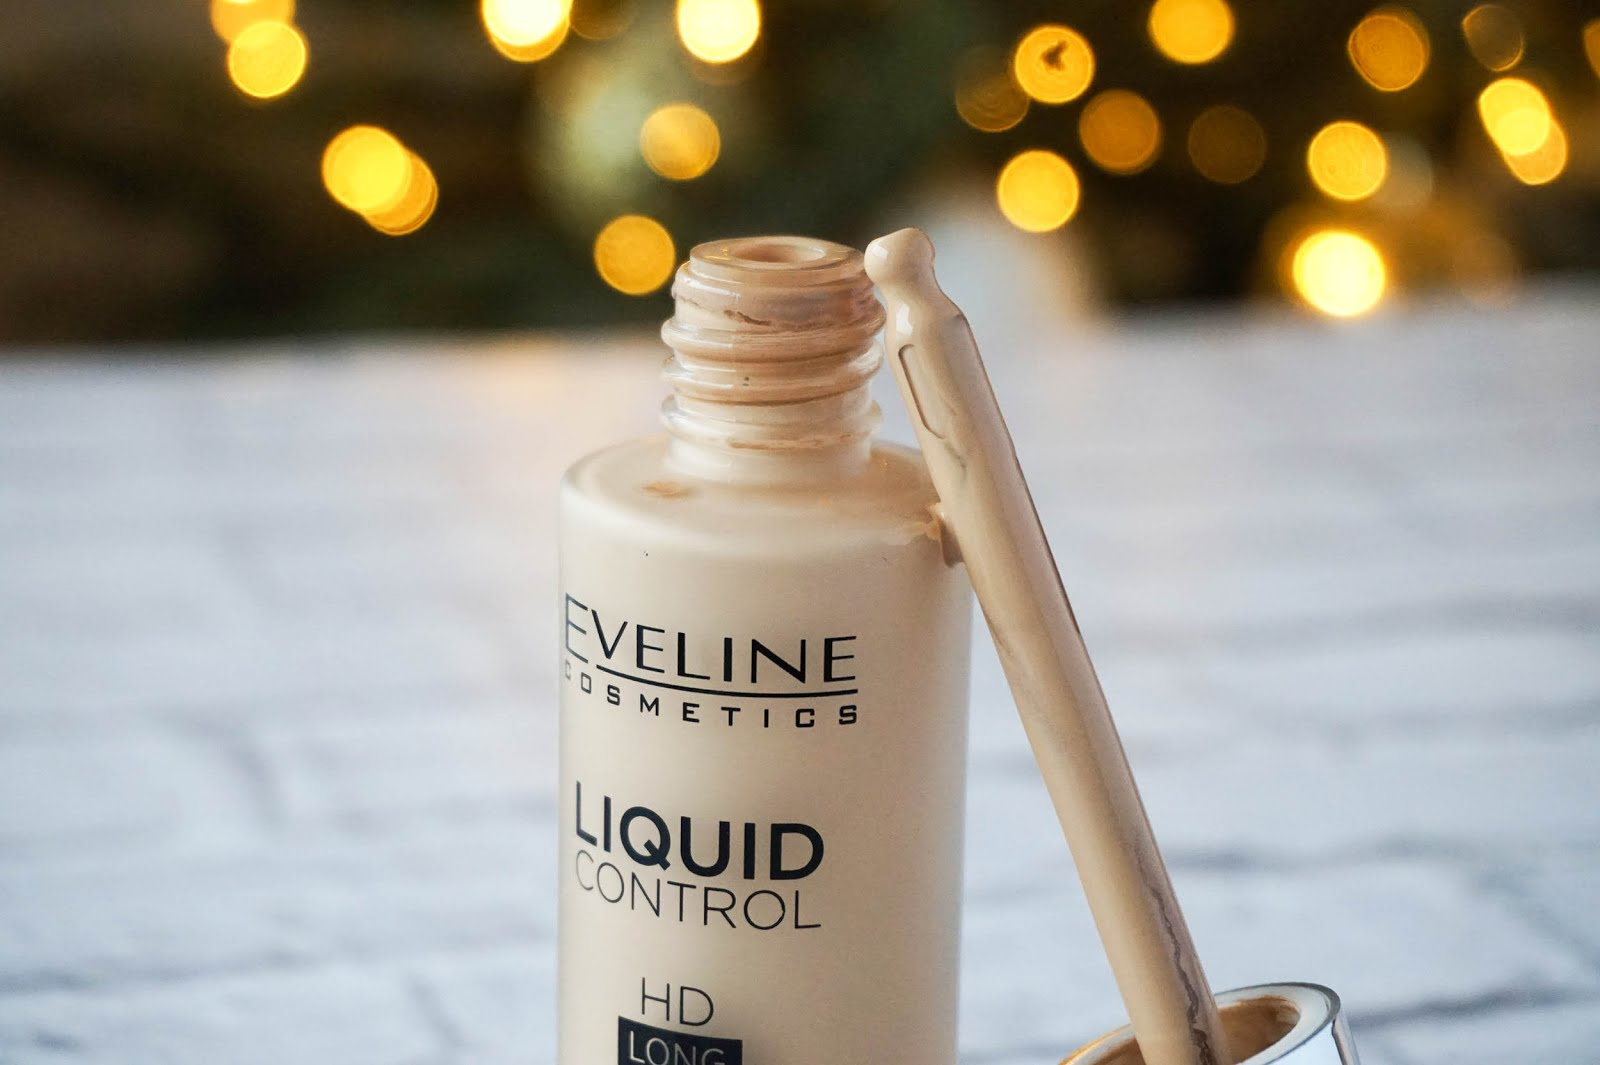 eveline-liquid-control-hd